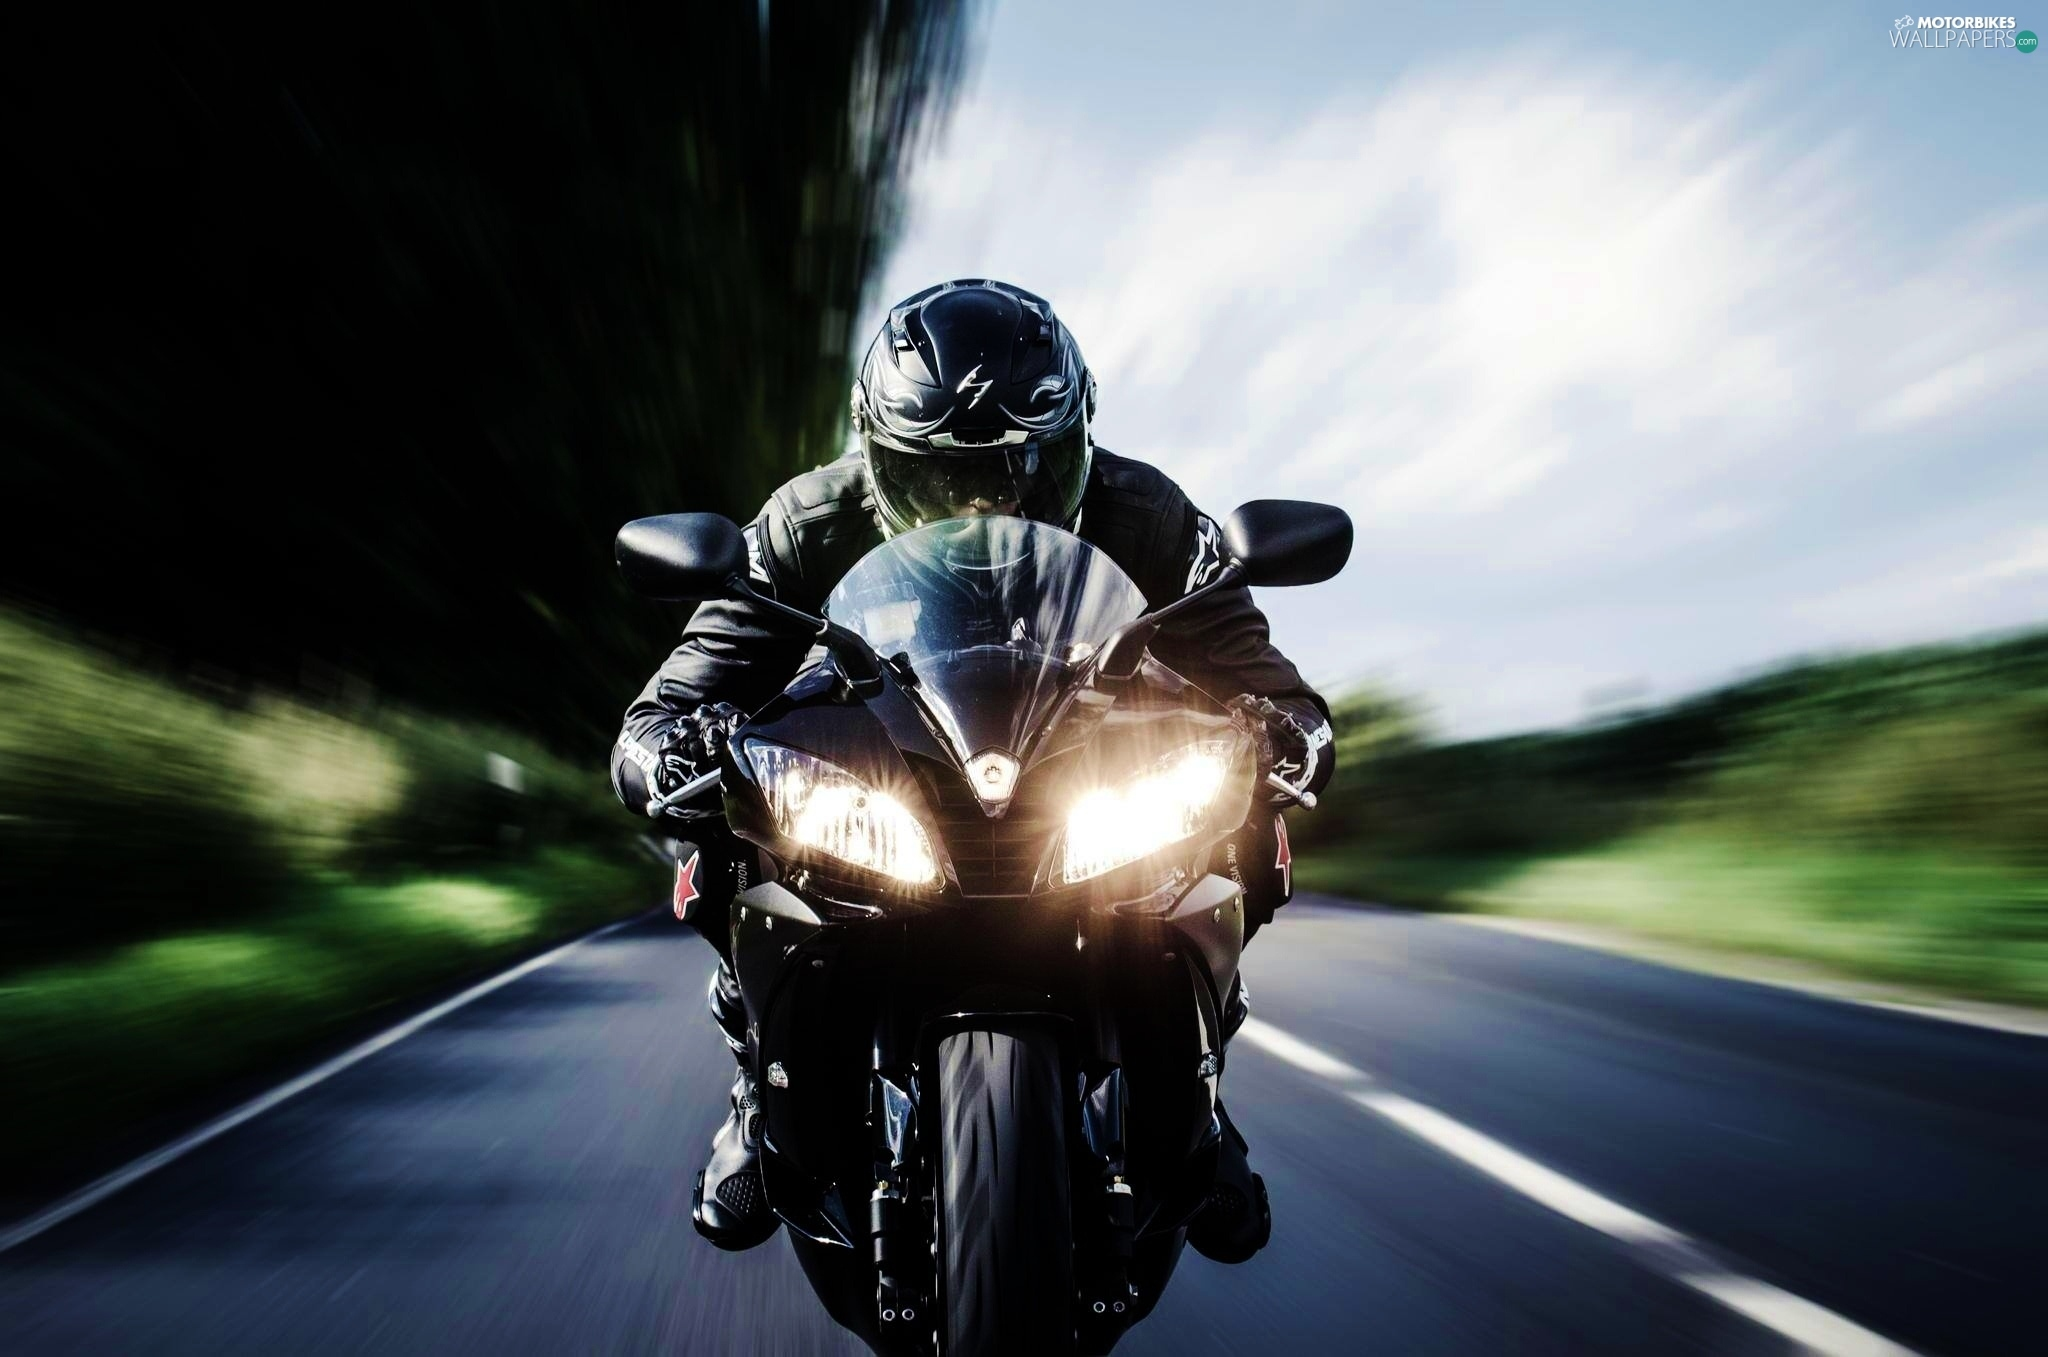 Motorcyclist photo